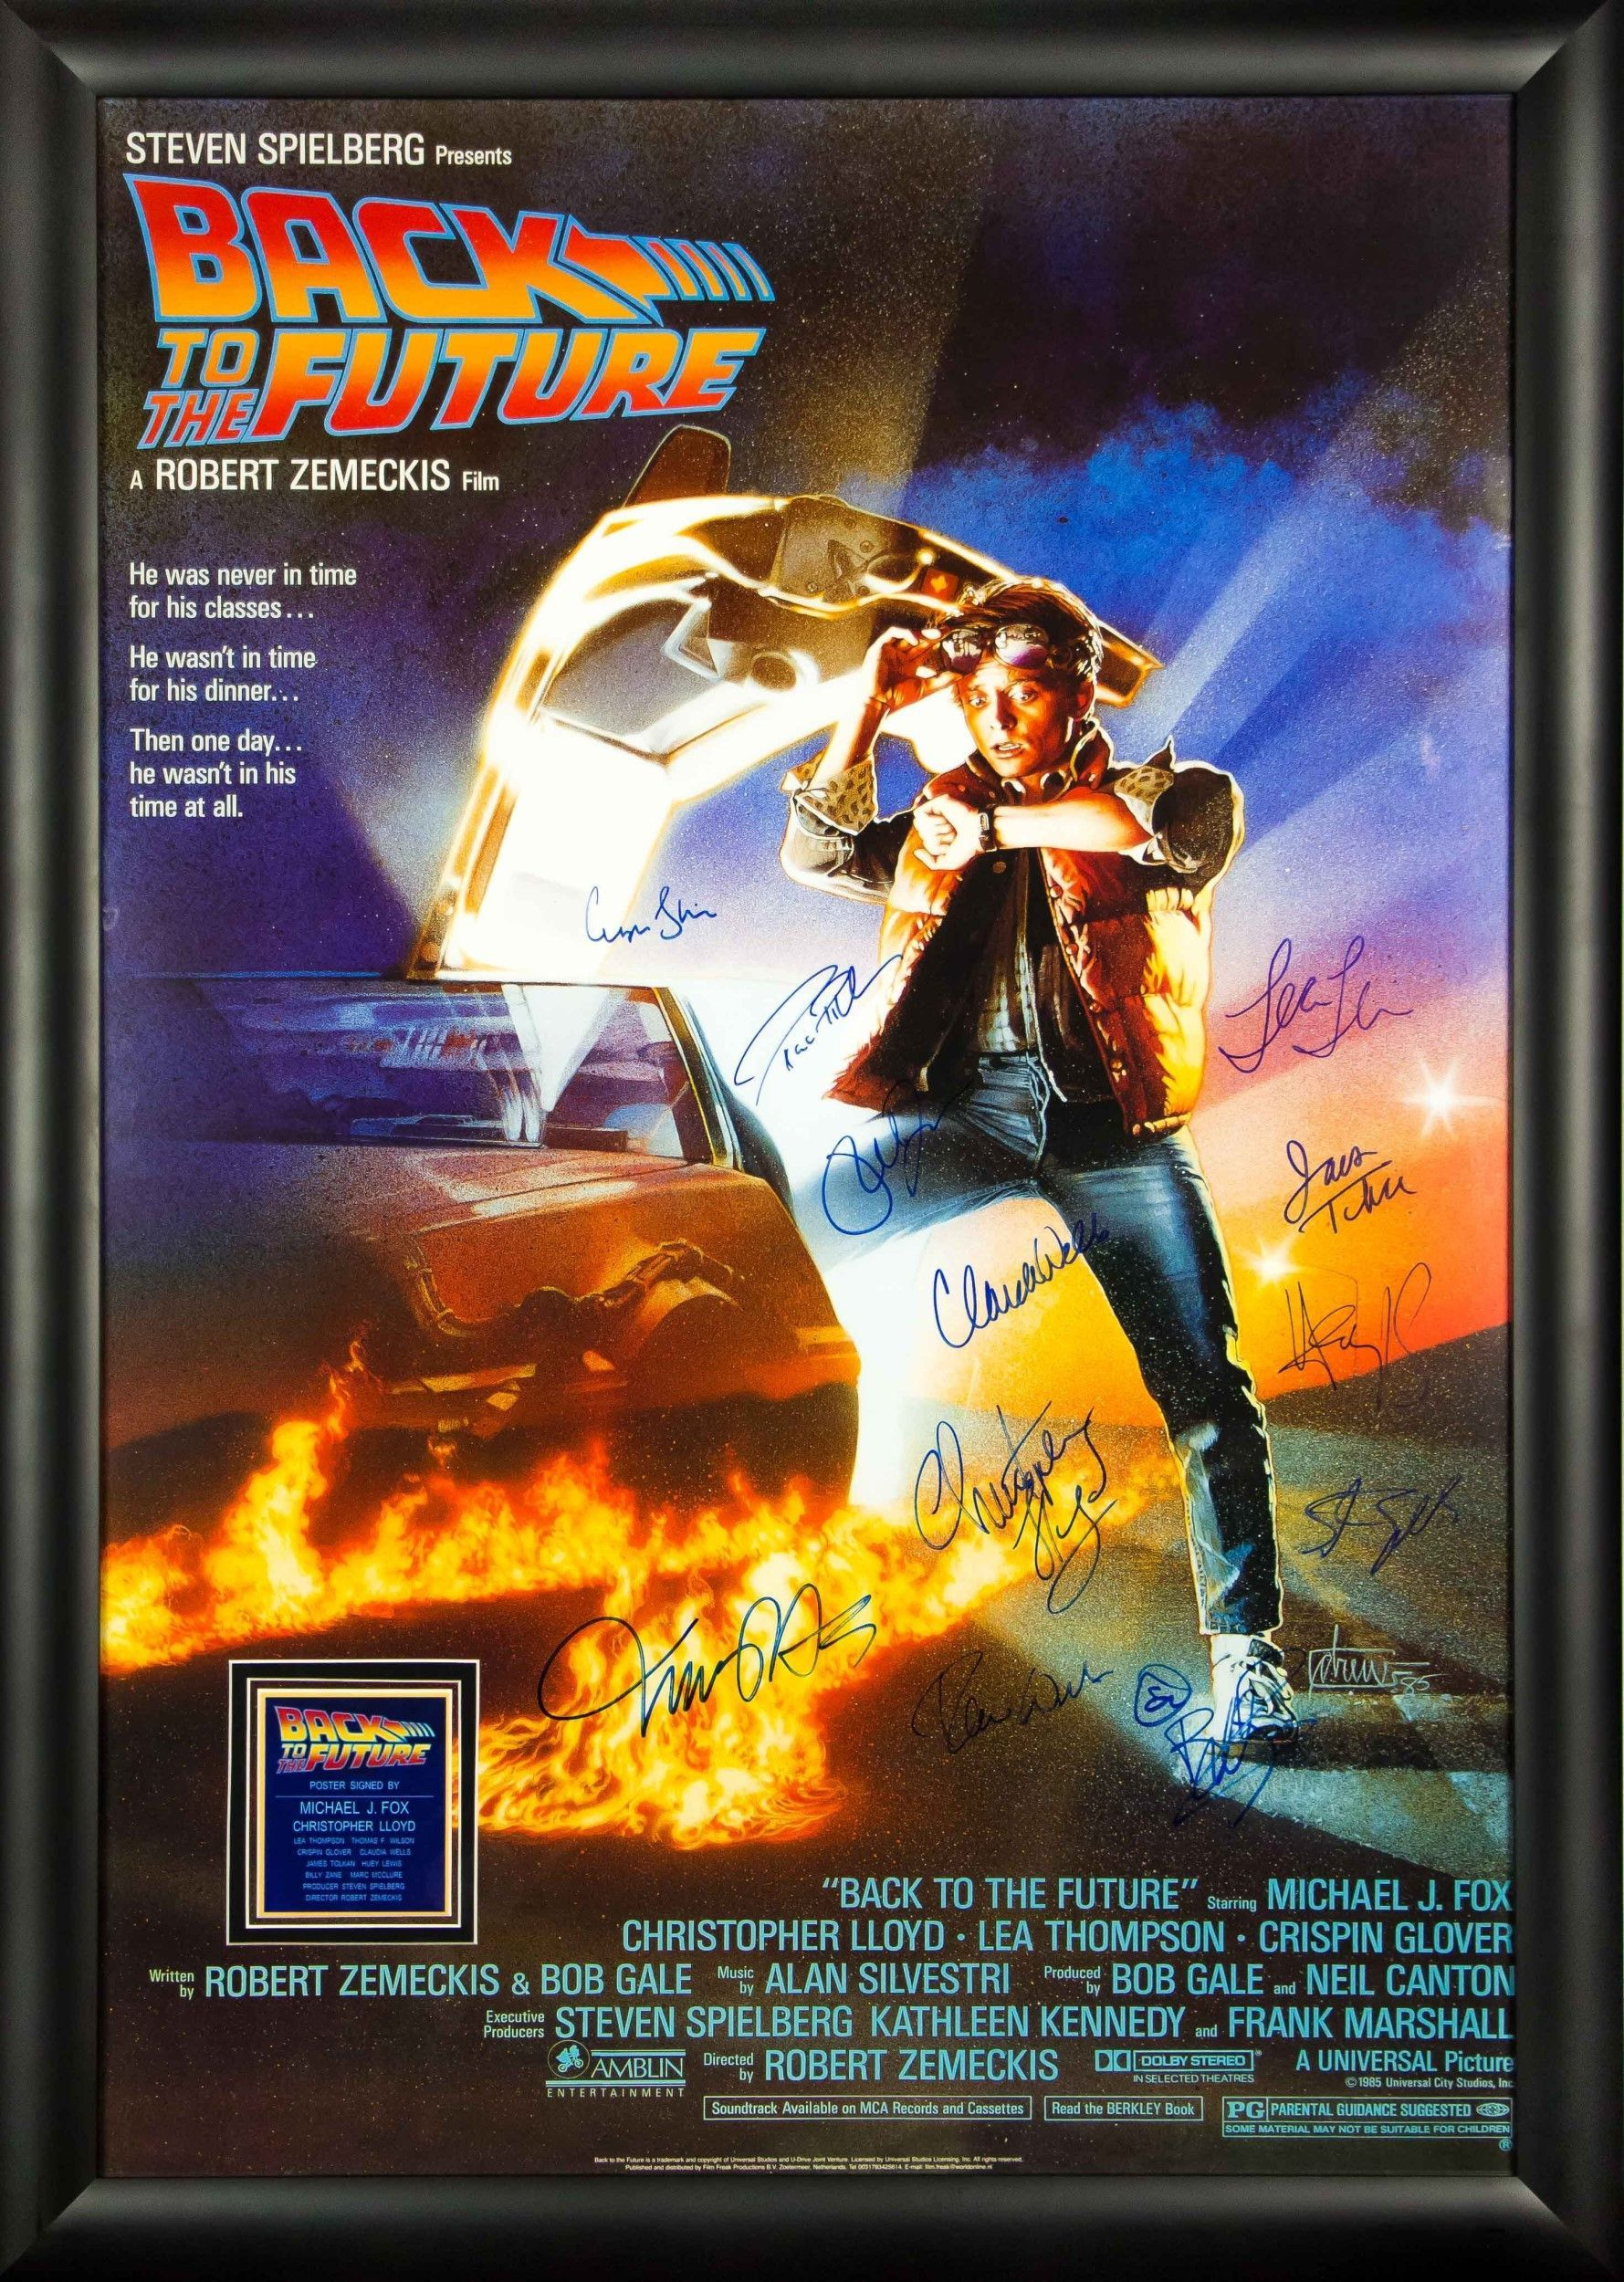 Back to the future autographed signed movie poster wood